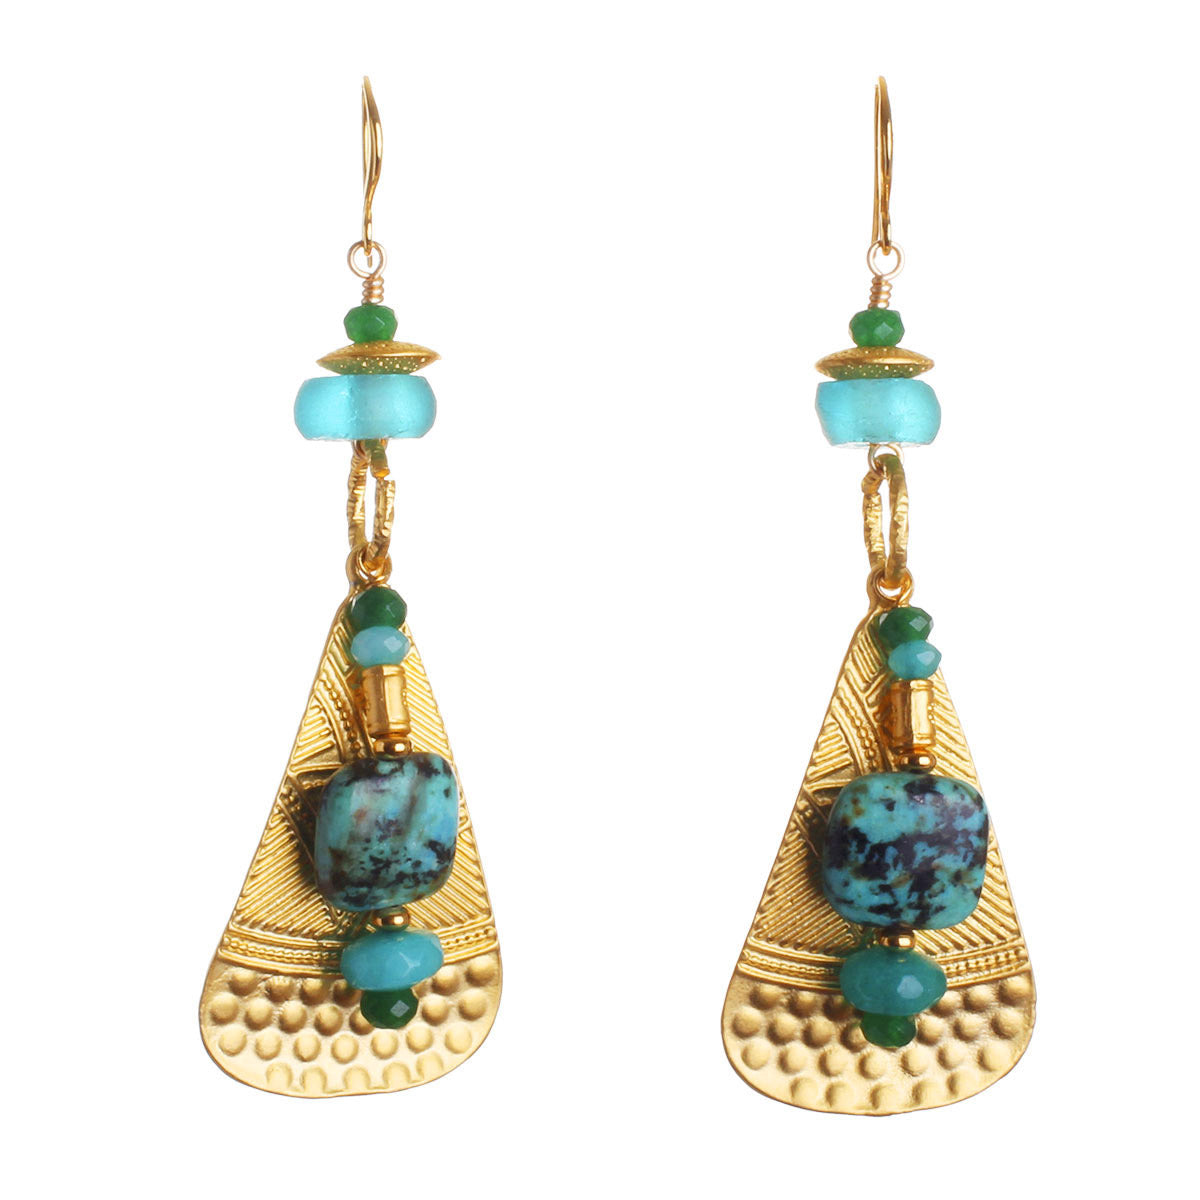 N°542 The New Rules for Turquoise Atoms & Particles Statement Earrings